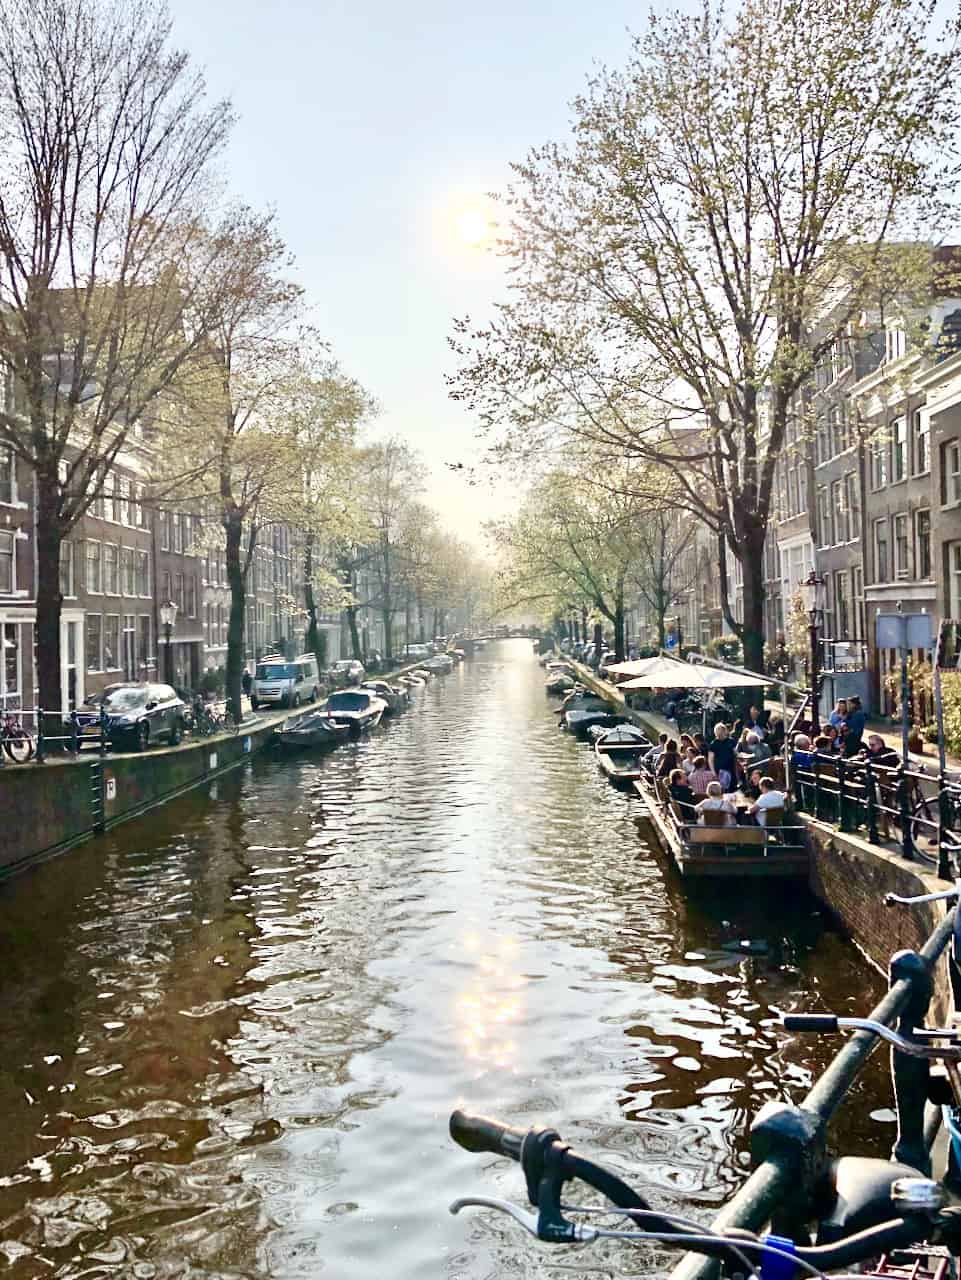 jordaan-amsterdam-canal-photo